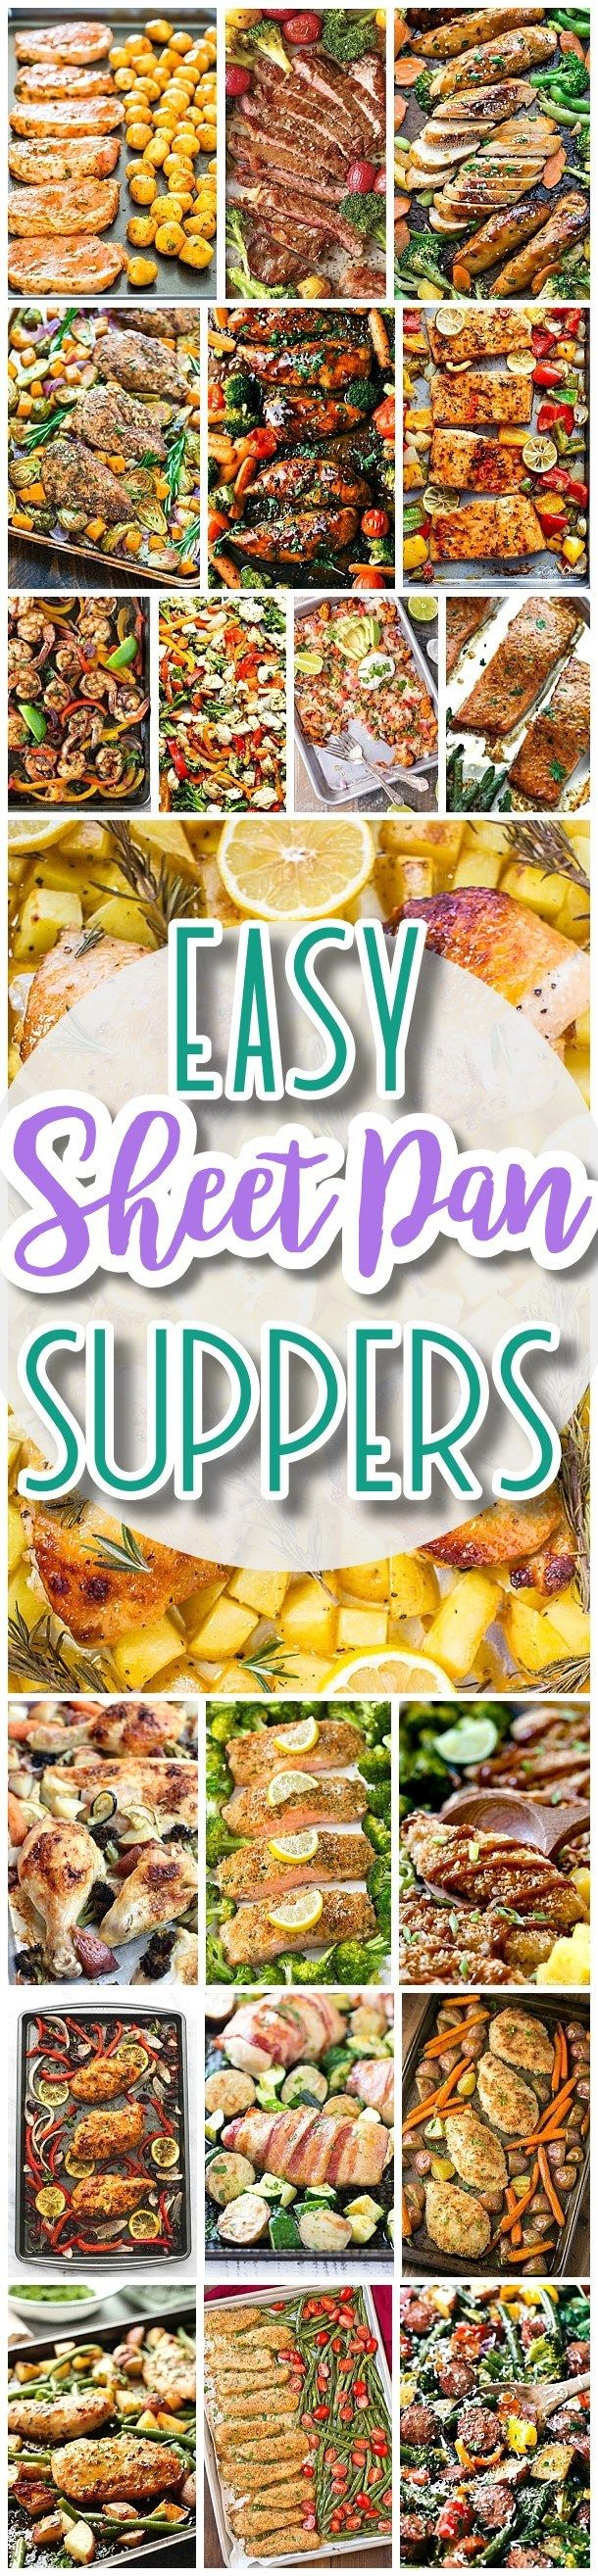 The BEST Sheet Pan Suppers Recipes - Easy and Quick Family Lunch and Simple Dinner Meal Ideas using only ONE SHEET PAN - Dreaming in DIY